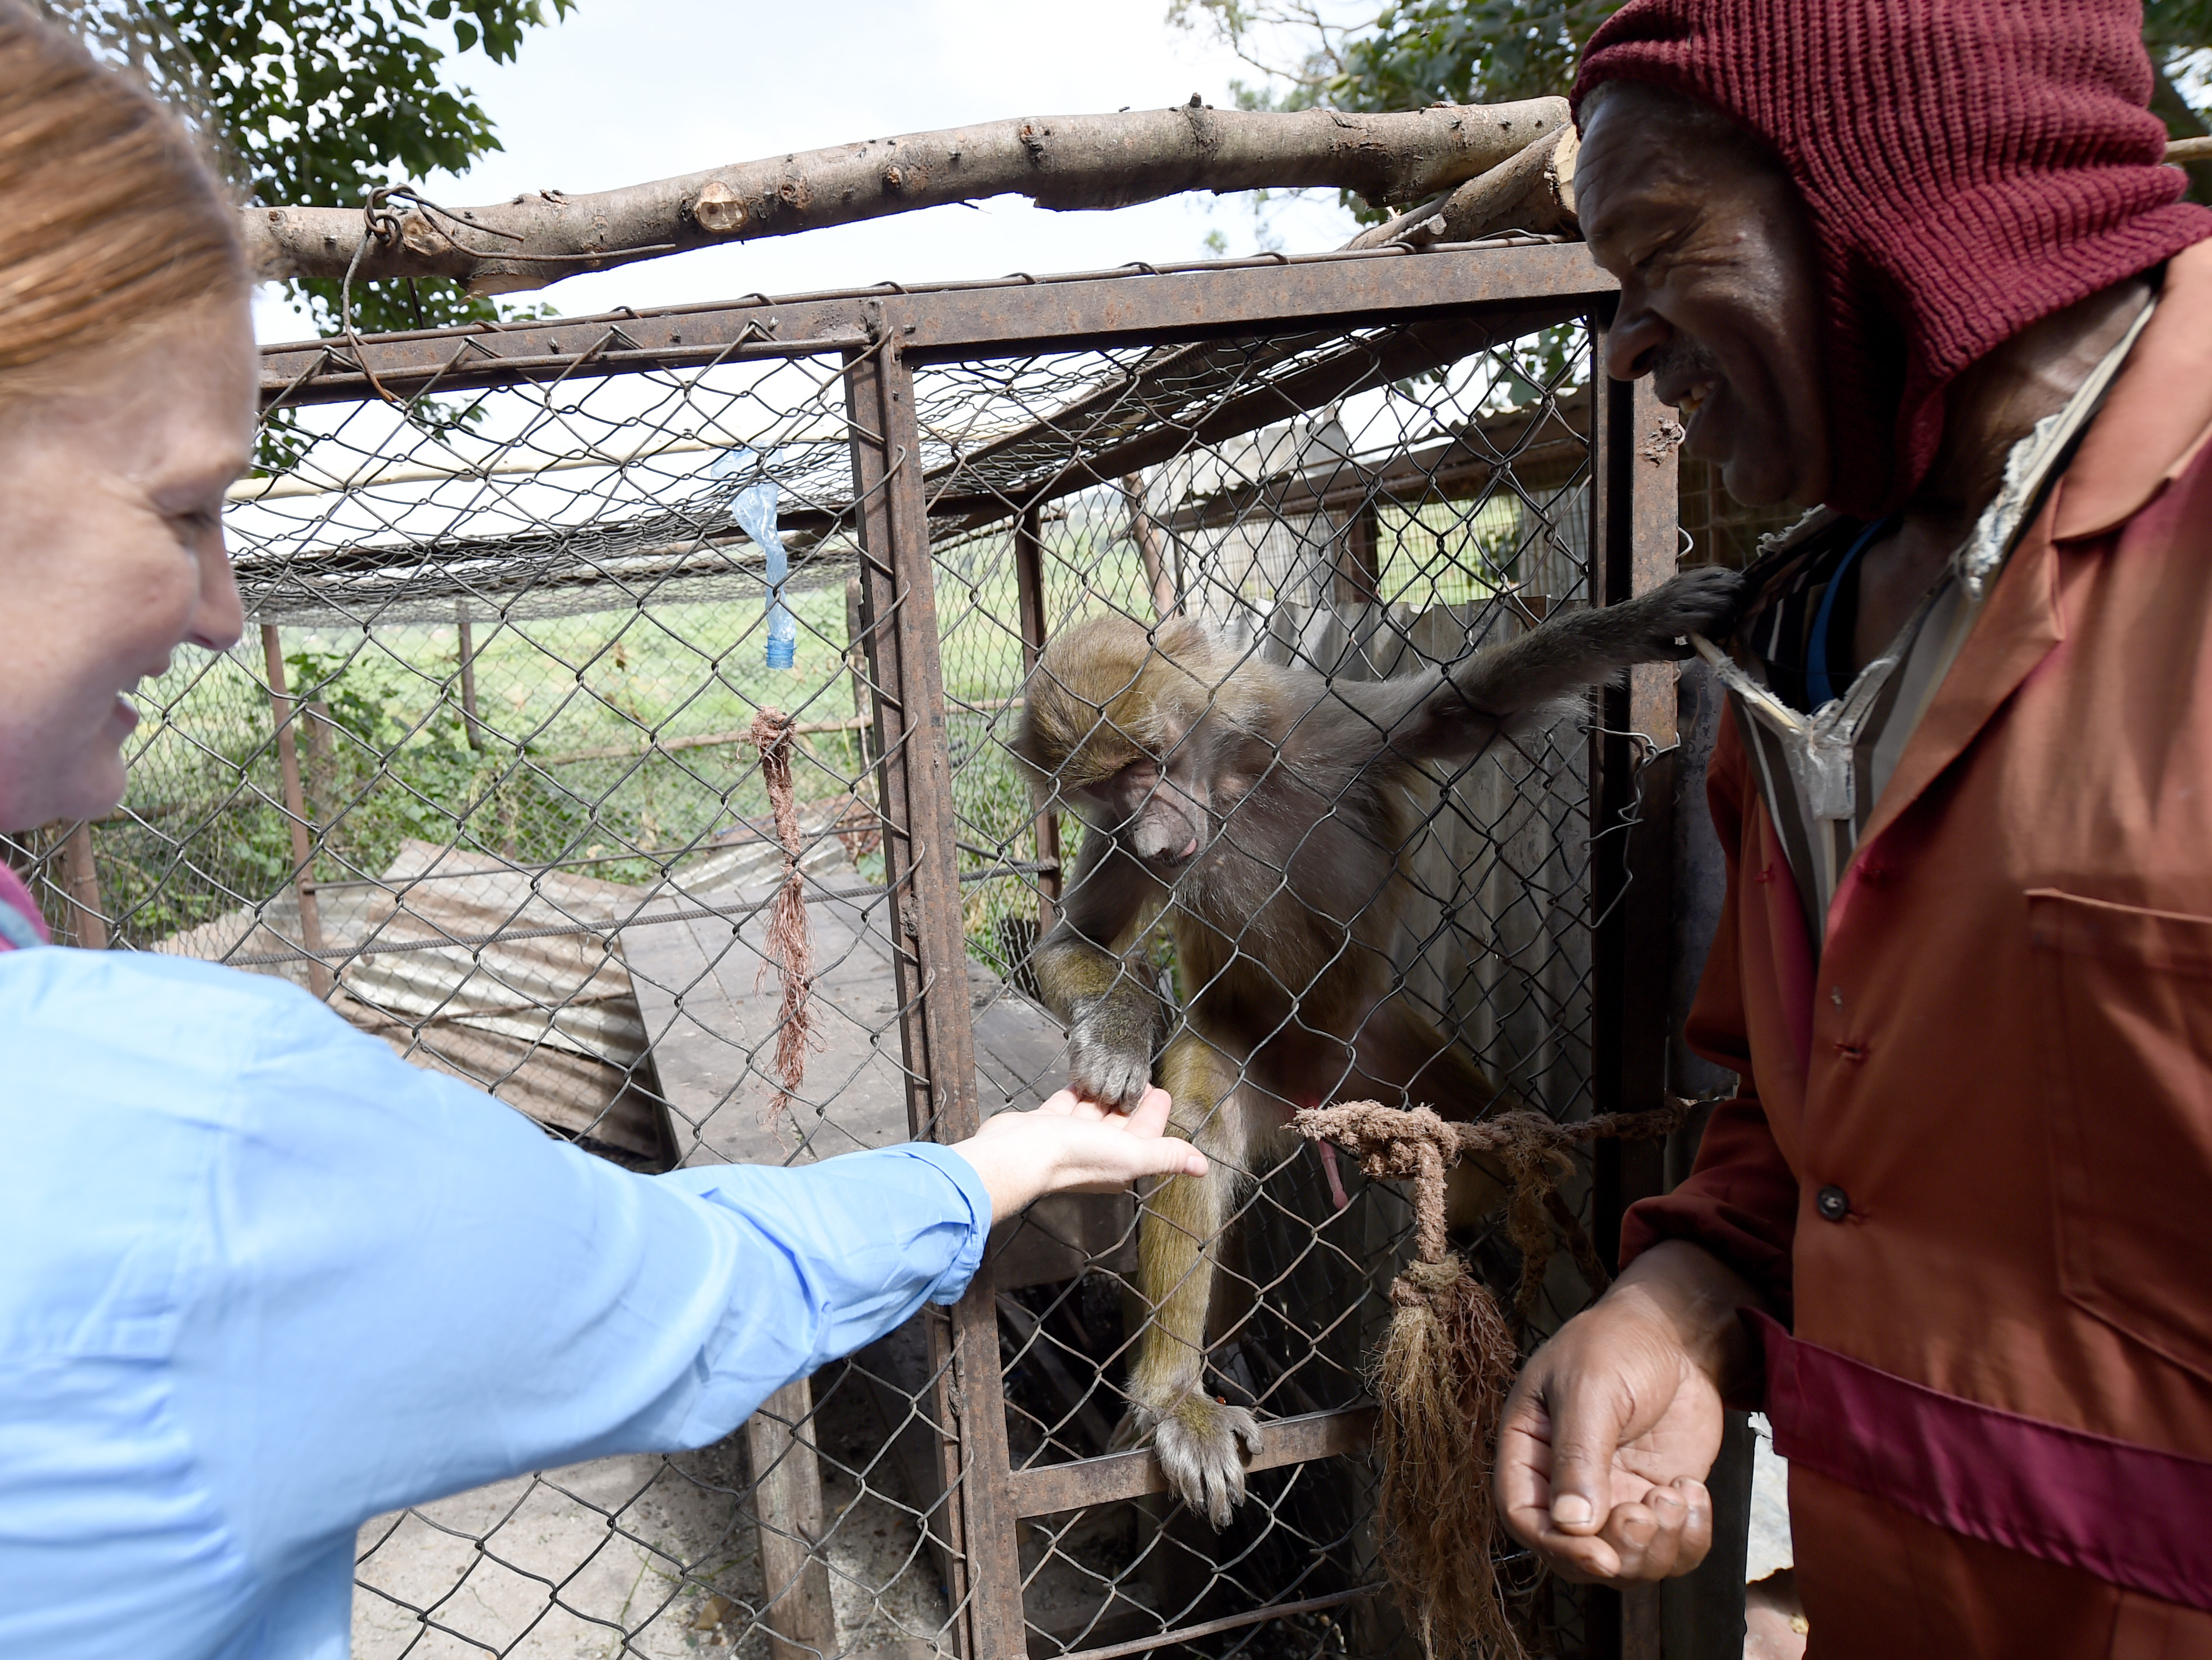 U.S. Army Capt. Jodi Collins, left, 404th Civil Affairs Battalion veterinarian, assigned to Combined Joint Task Force- Horn of Africa, feeds a monkey at the Haramaya University Zoo in Dire Dawa, Ethiopia, June 19, 2015. The team attended the Third International Veterinary Education Conference hosted by the HU College of Veterinary Medicine. (U.S. Air Force photo by. Senior Airman Nesha Humes)